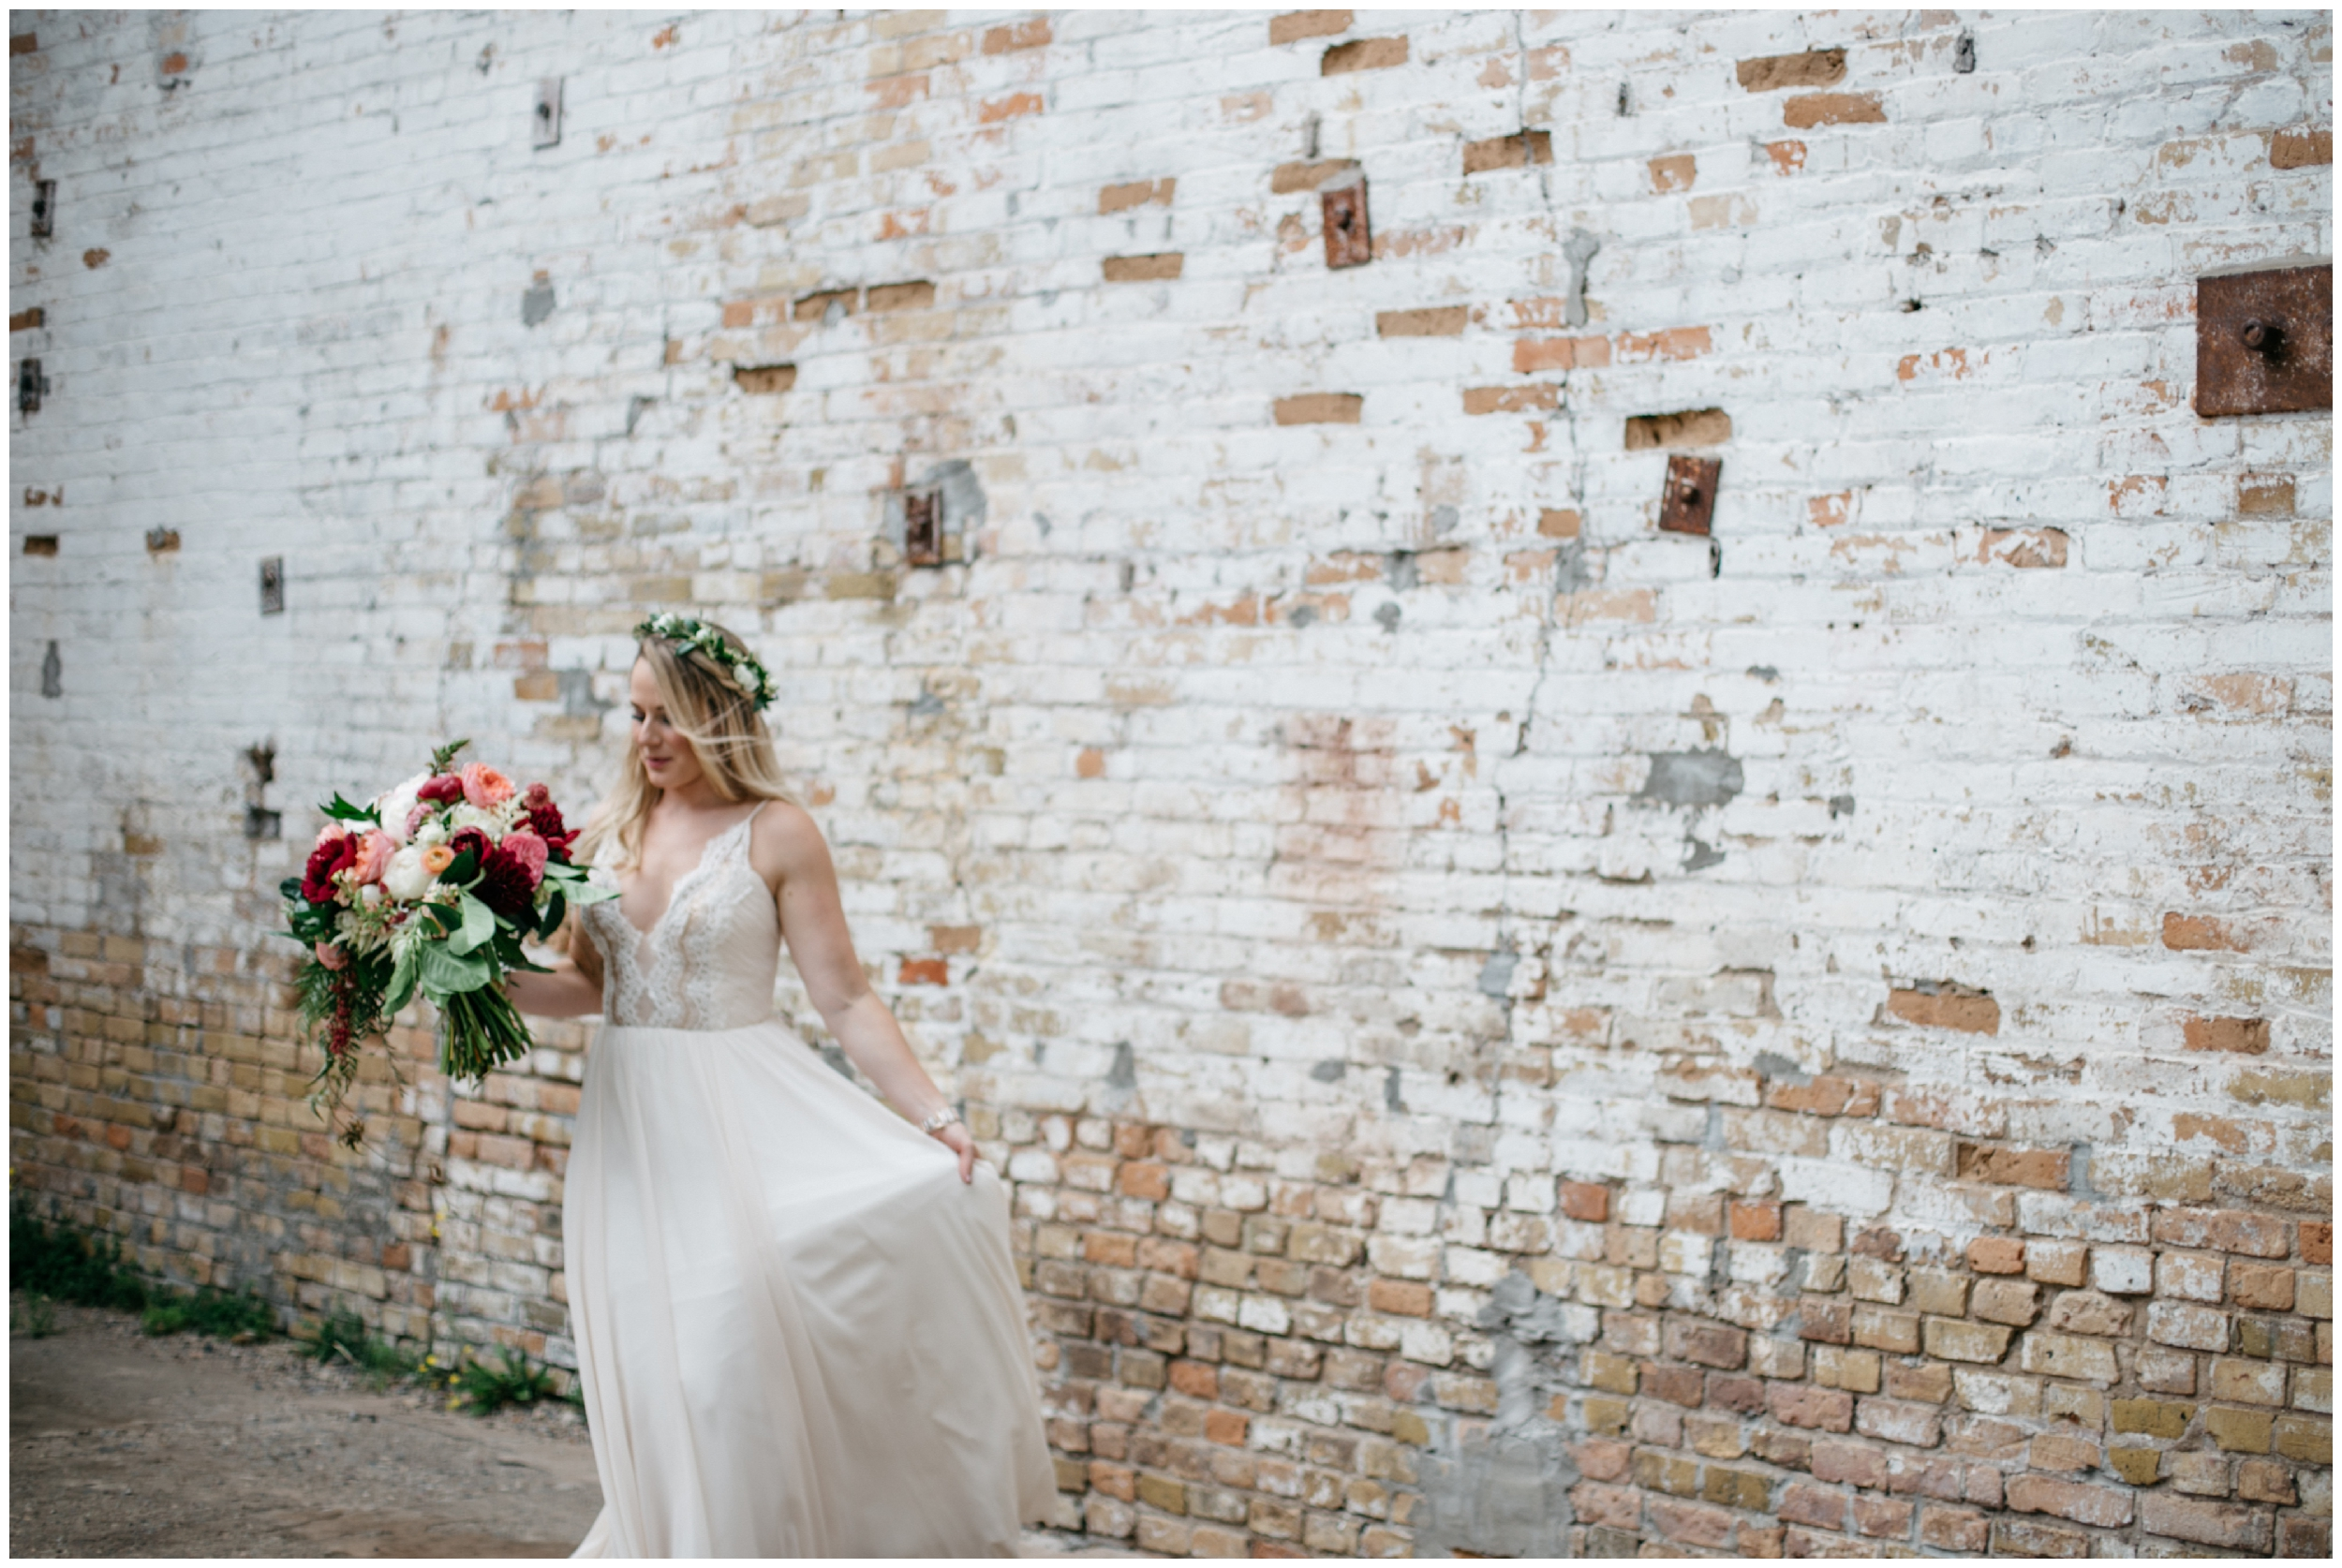 Boho chic warehouse wedding at the NP Event Space